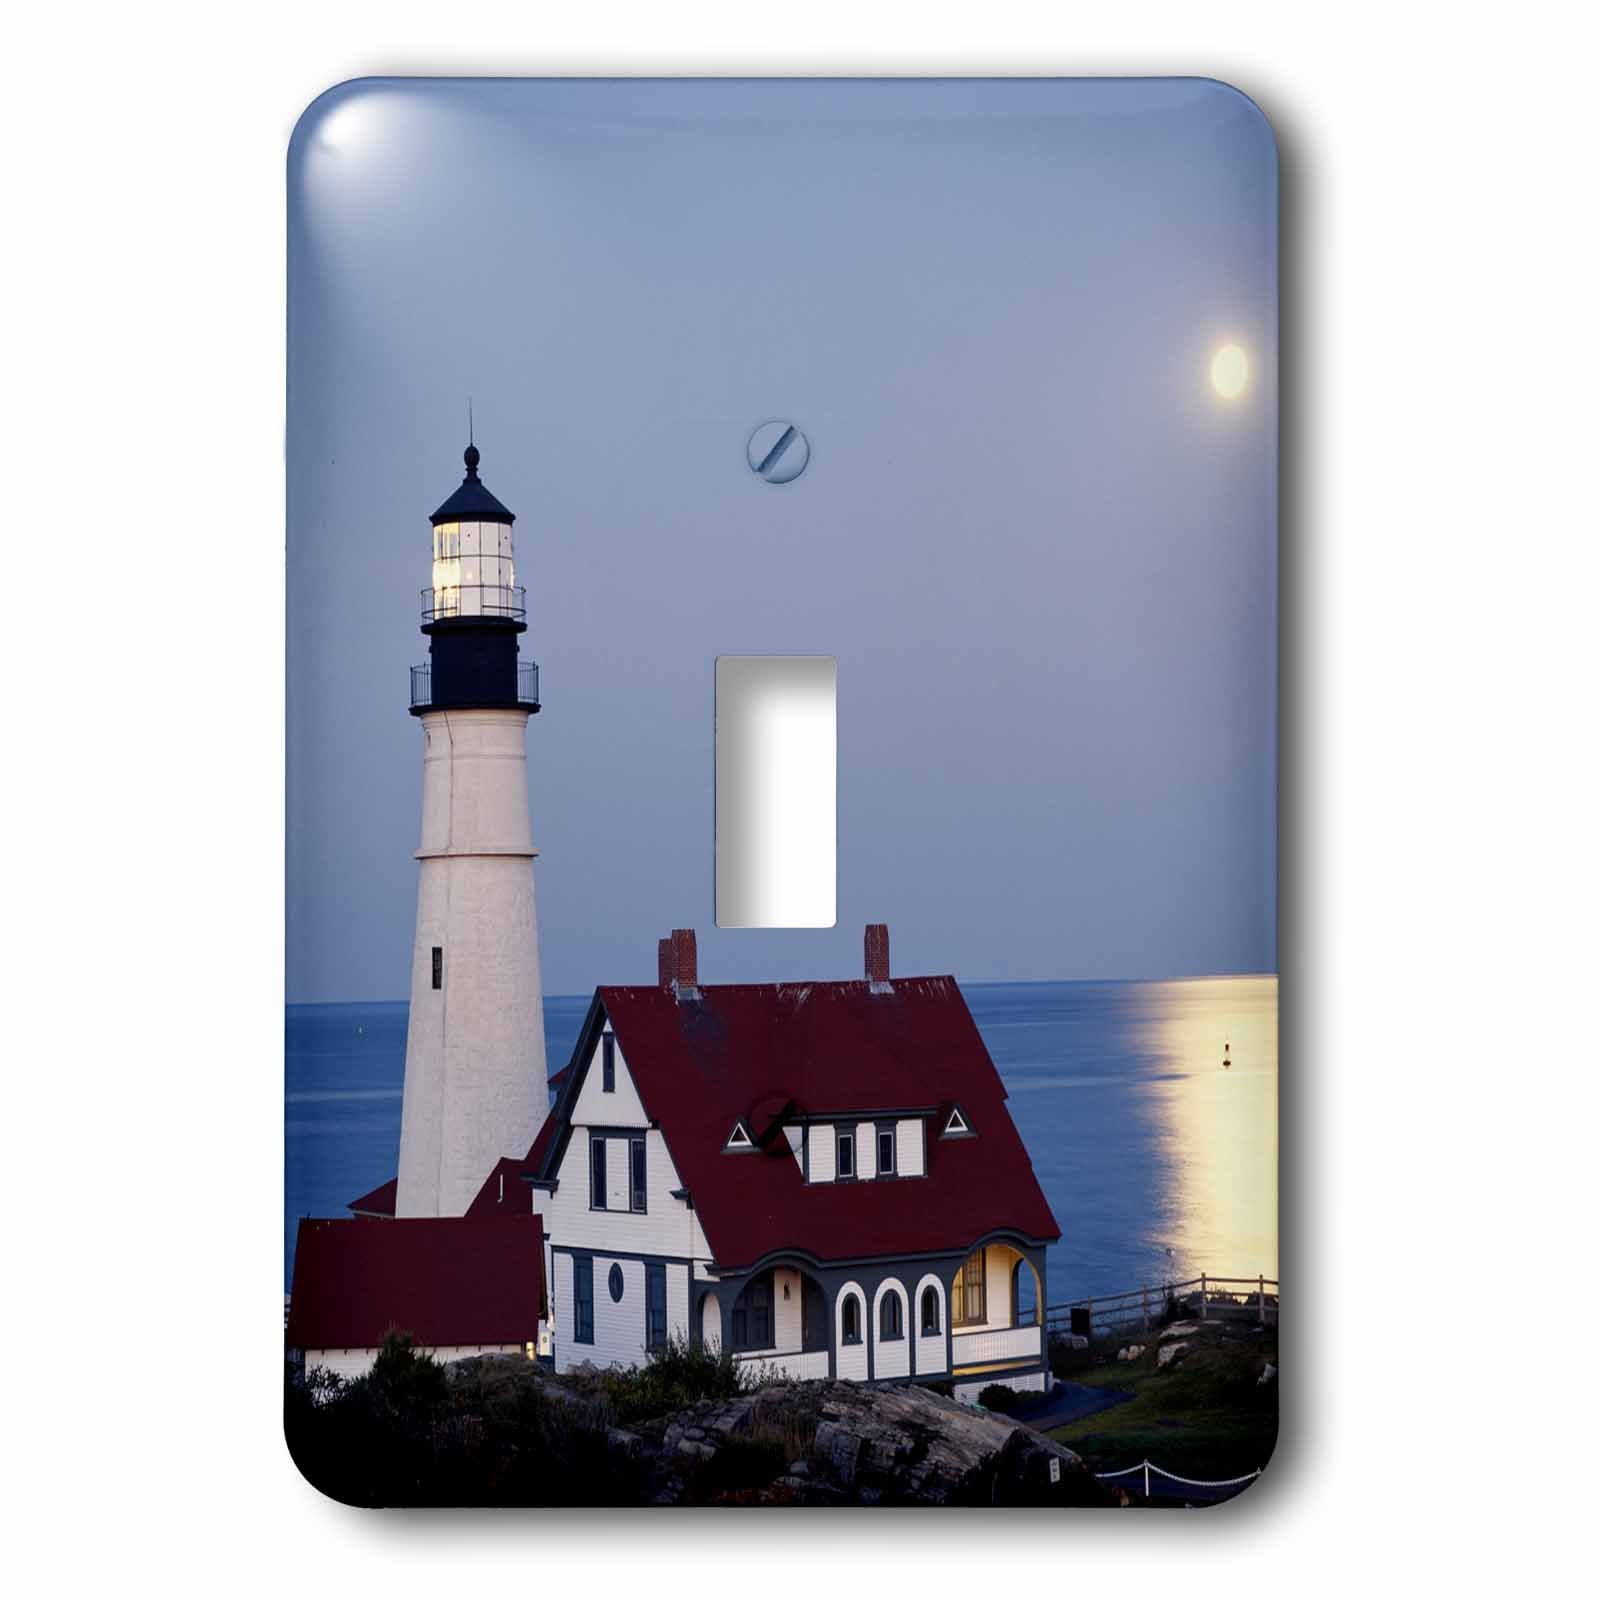 Danita Delimont - Walter Bibikow - Lighthouses - USA, Maine, Portland, Cape Elizabeth, Lighthouse with full moon. - Light Switch Covers - single toggle switch (lsp_192160_1)